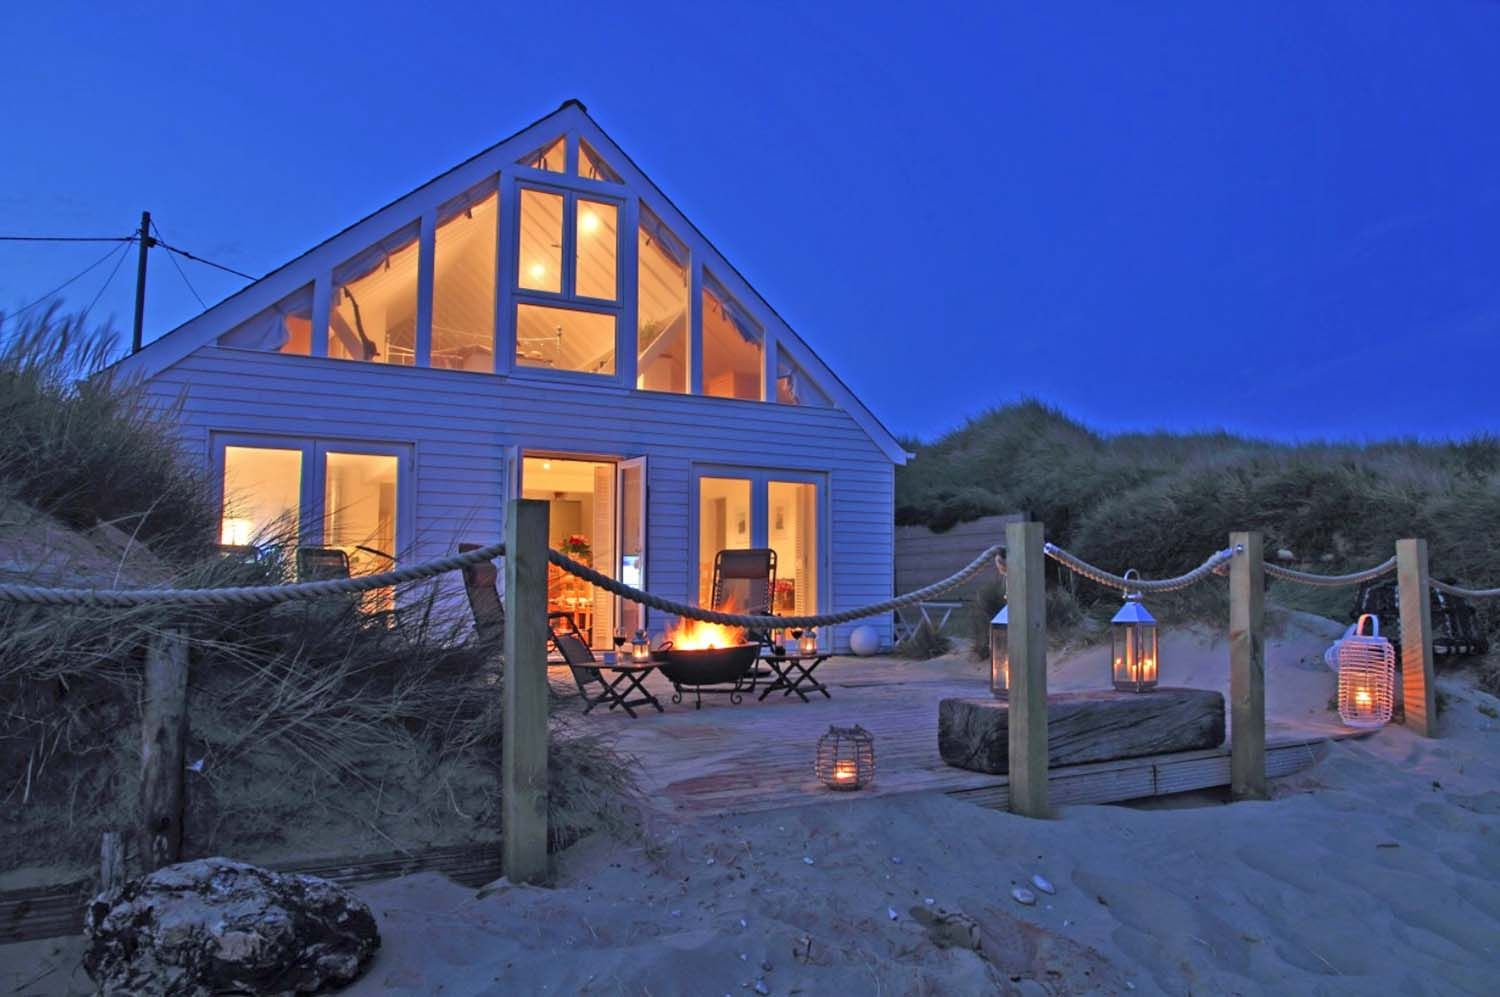 A Perfect Seaside Holiday In East Sussex Barefoot Beach House Luxury Beach House Seaside House Beach Houses For Rent